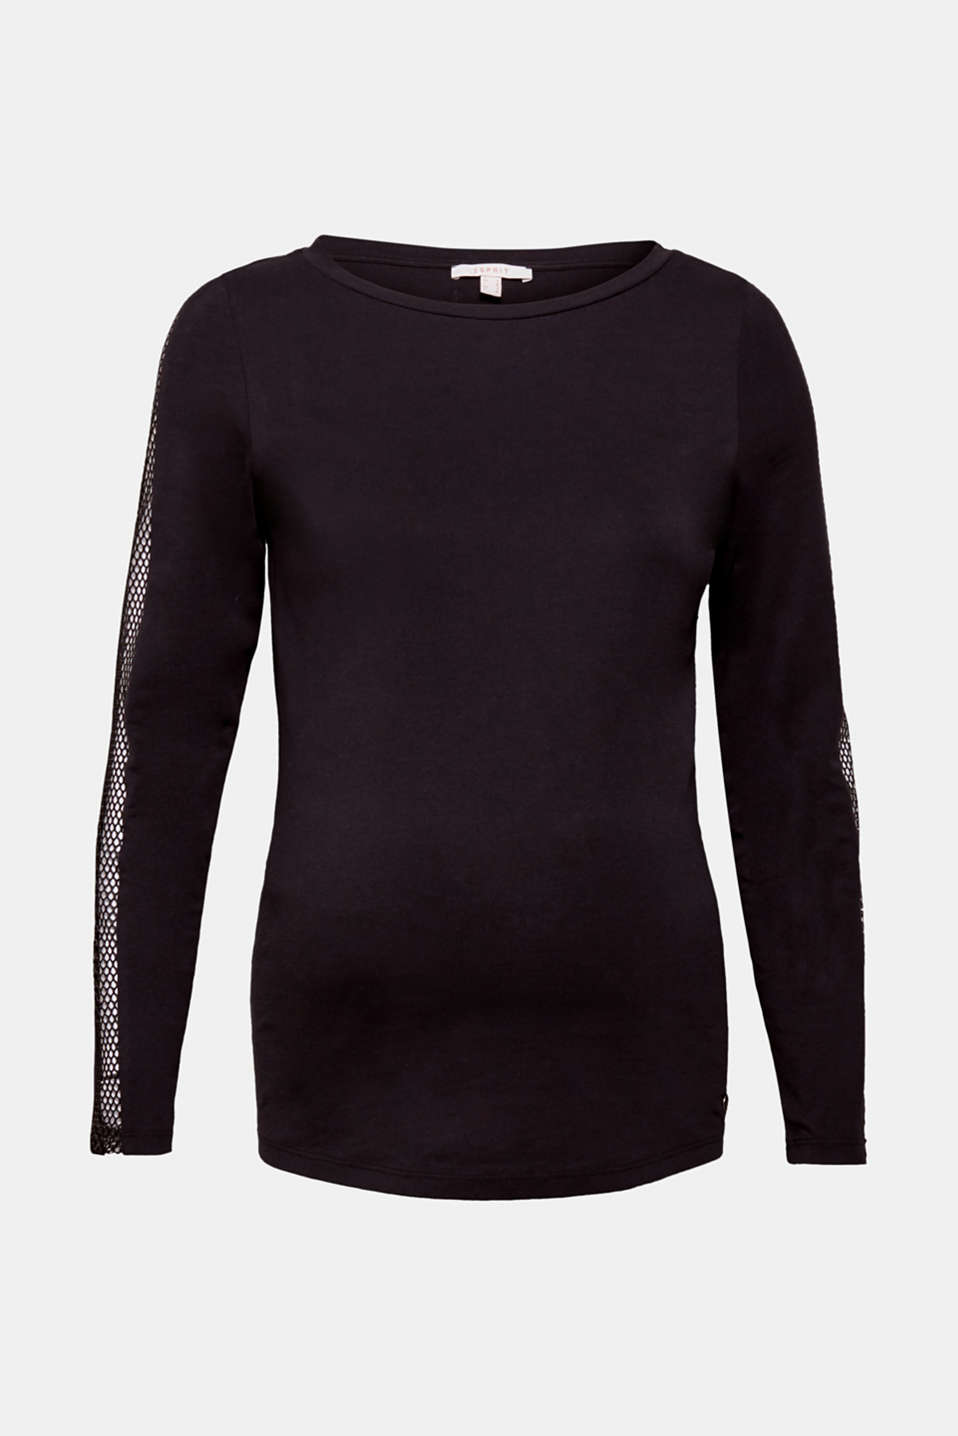 Esprit - Long sleeve top with mesh details, 100% cotton